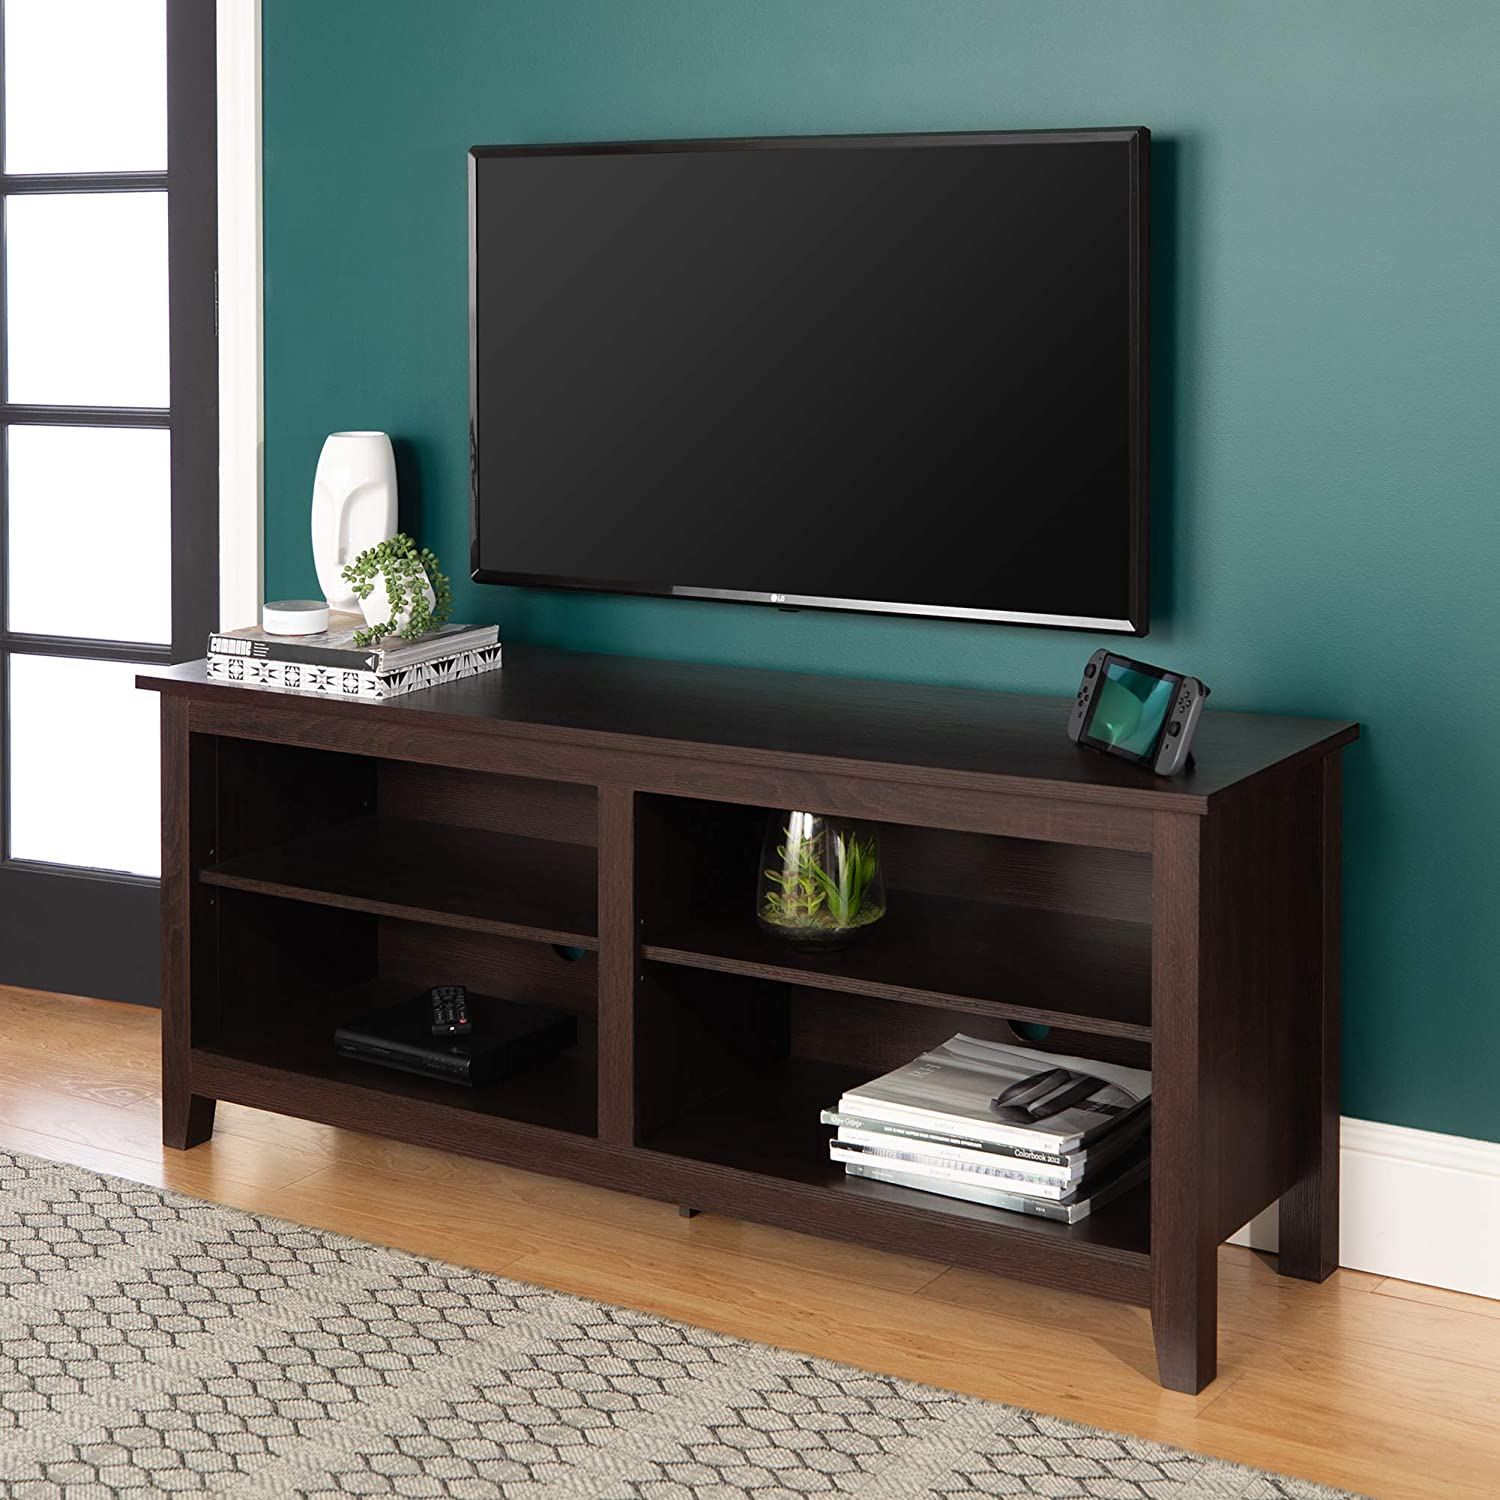 """WE Furniture Minimal Farmhouse Wood Universal Stand for TV's up to 64"""" Flat Screen"""